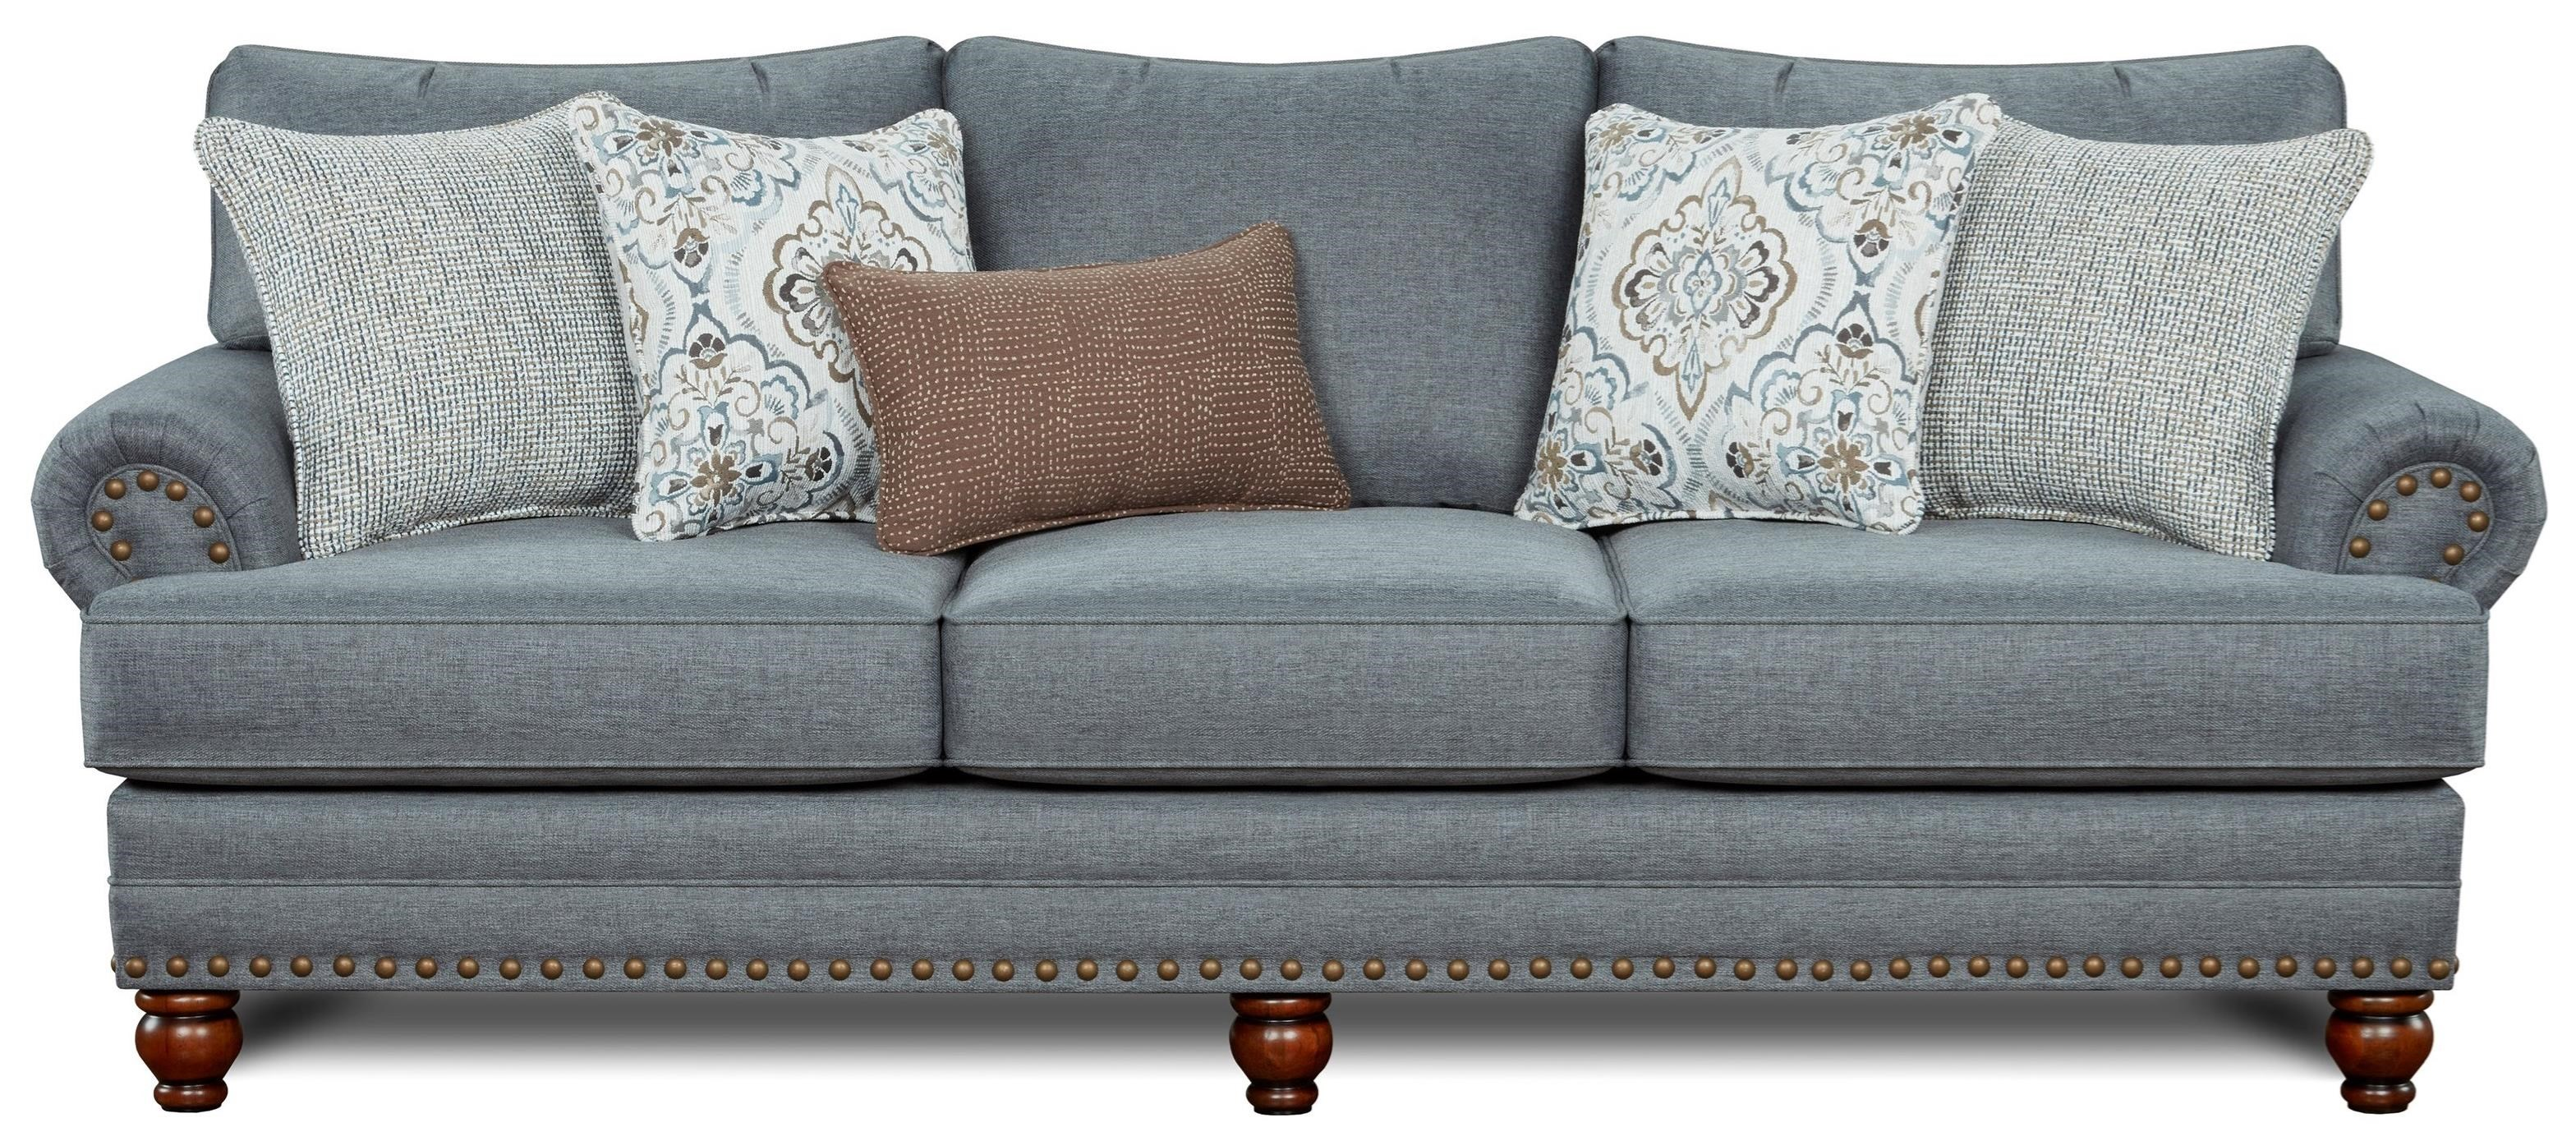 2820 Sofa by FN at Lindy's Furniture Company